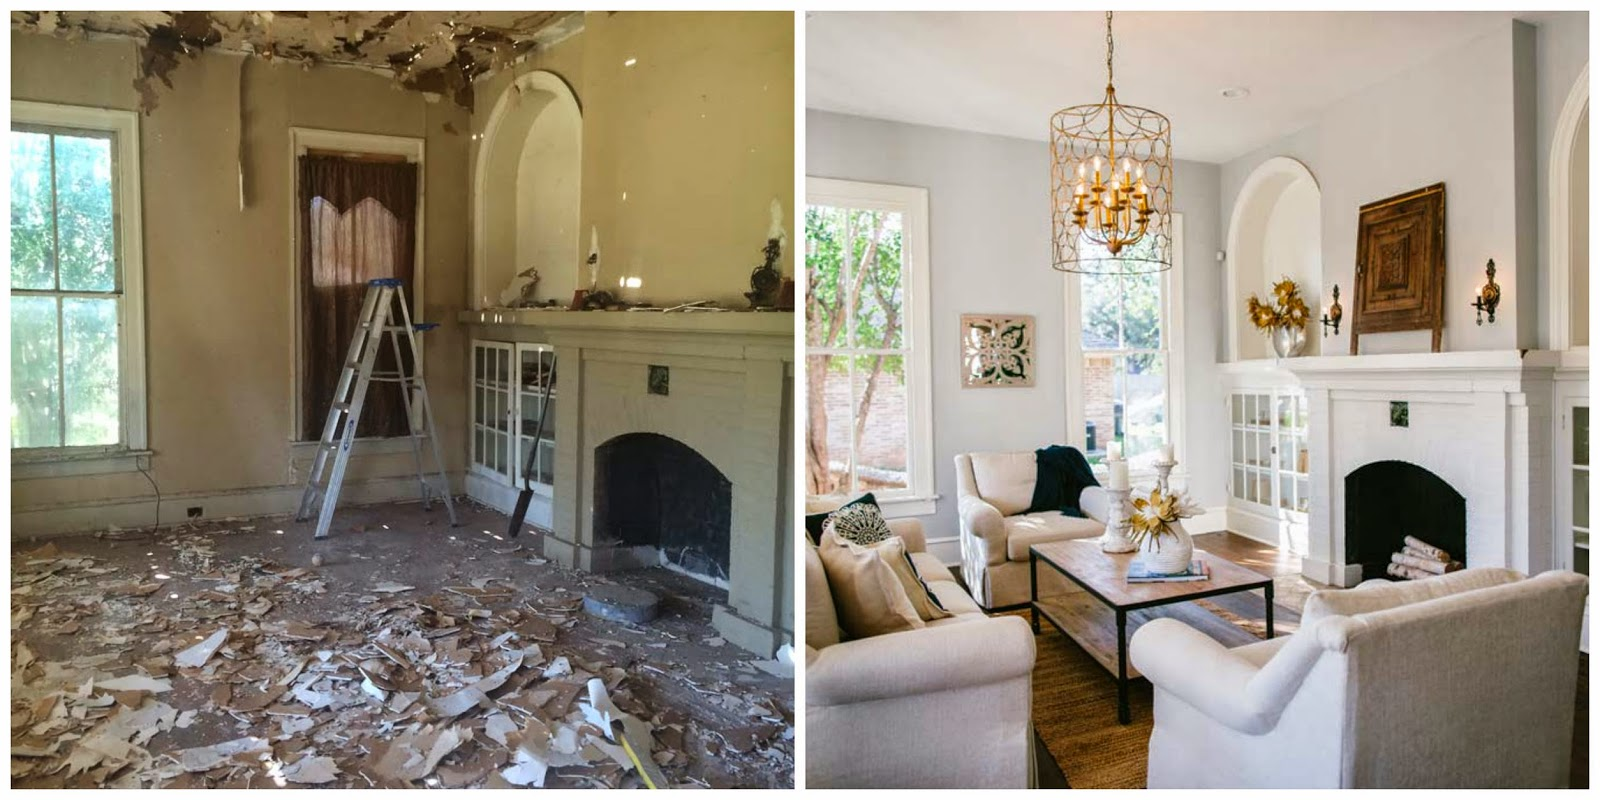 Before and After Southern Fixer Upper - Thistlewood Farm |Fixer Upper Before And After